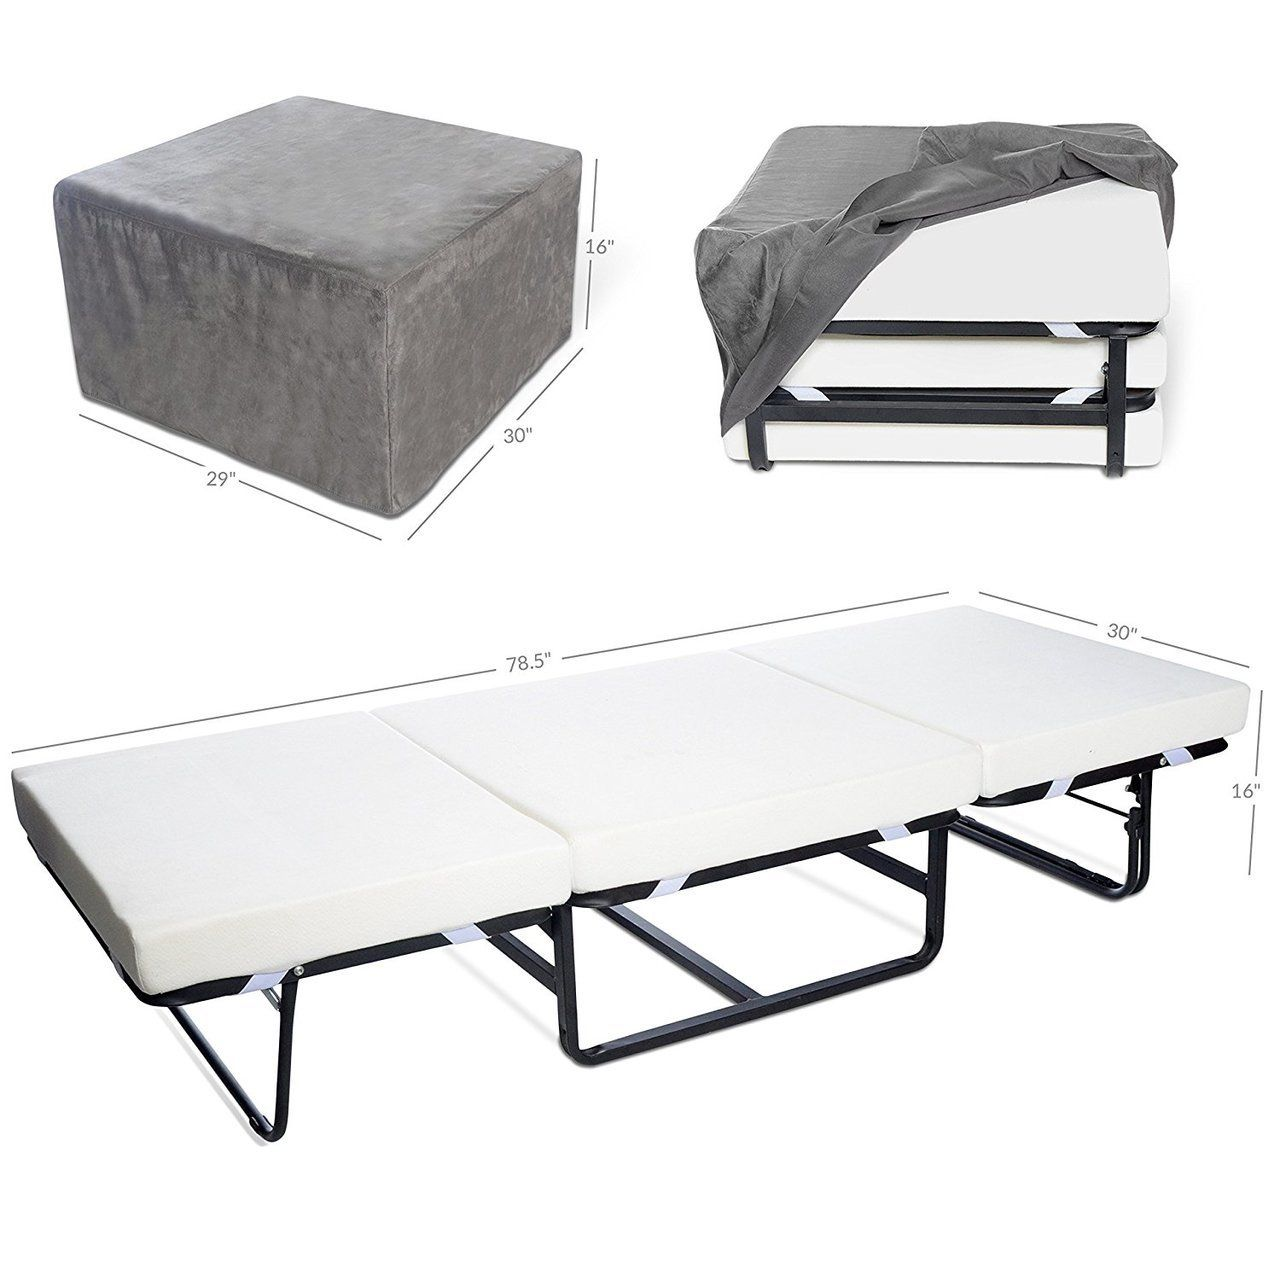 Folding Bed Ottoman Single Size with Gray Suede Cover, RV